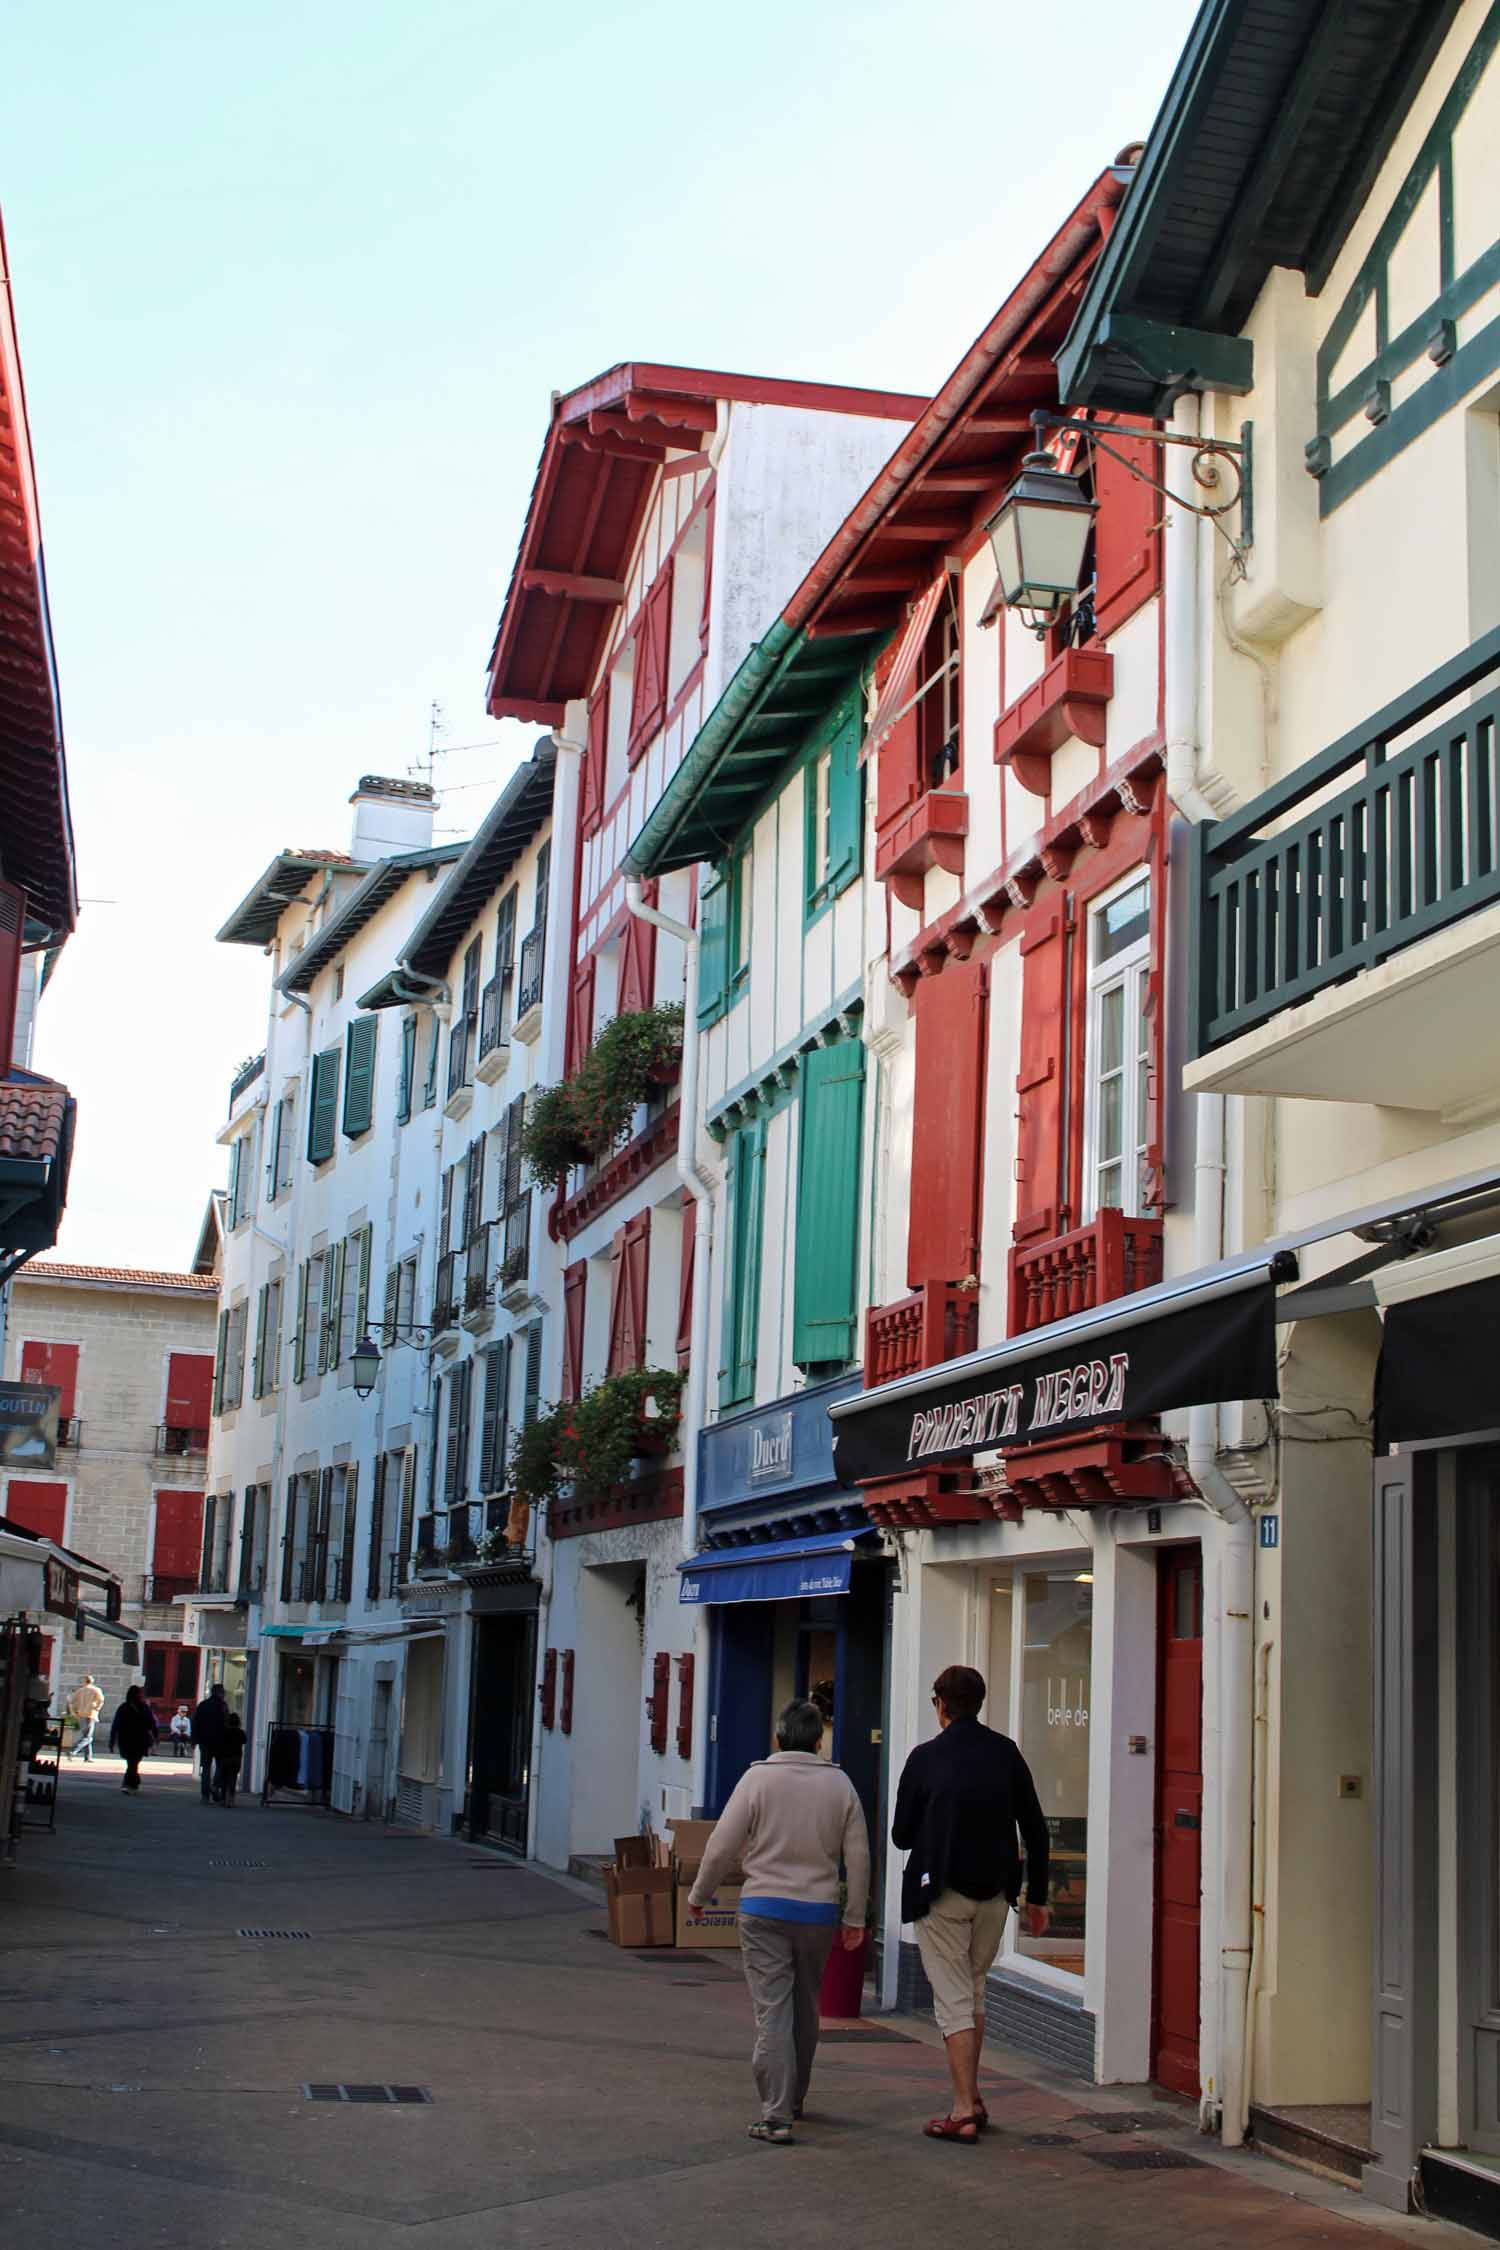 Saint-Jean-de-Luz, coloured houses